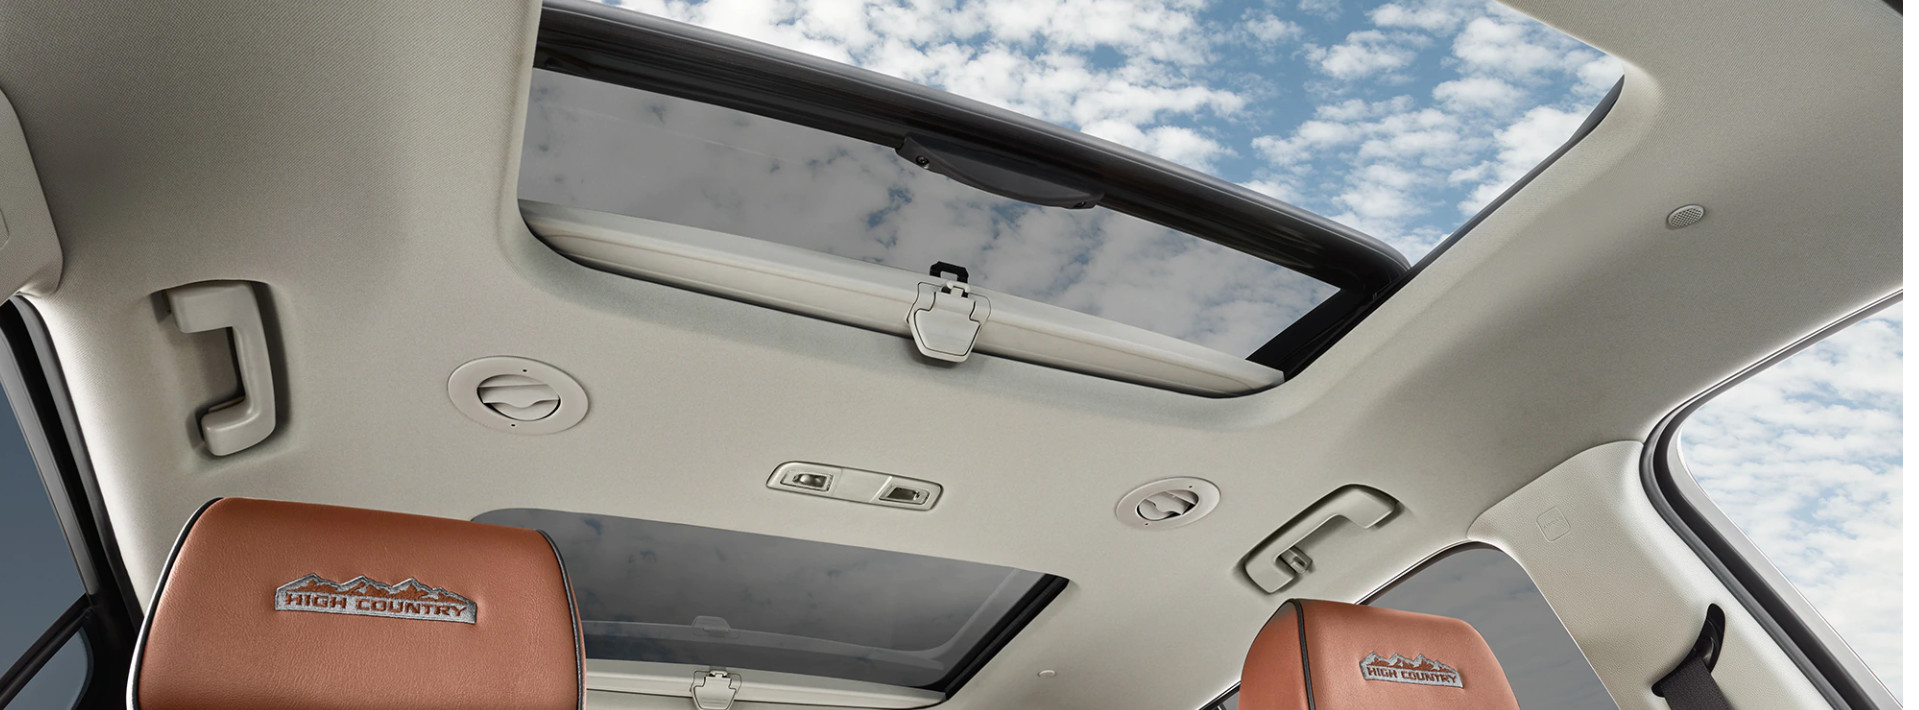 Sunroof in the 2020 Traverse